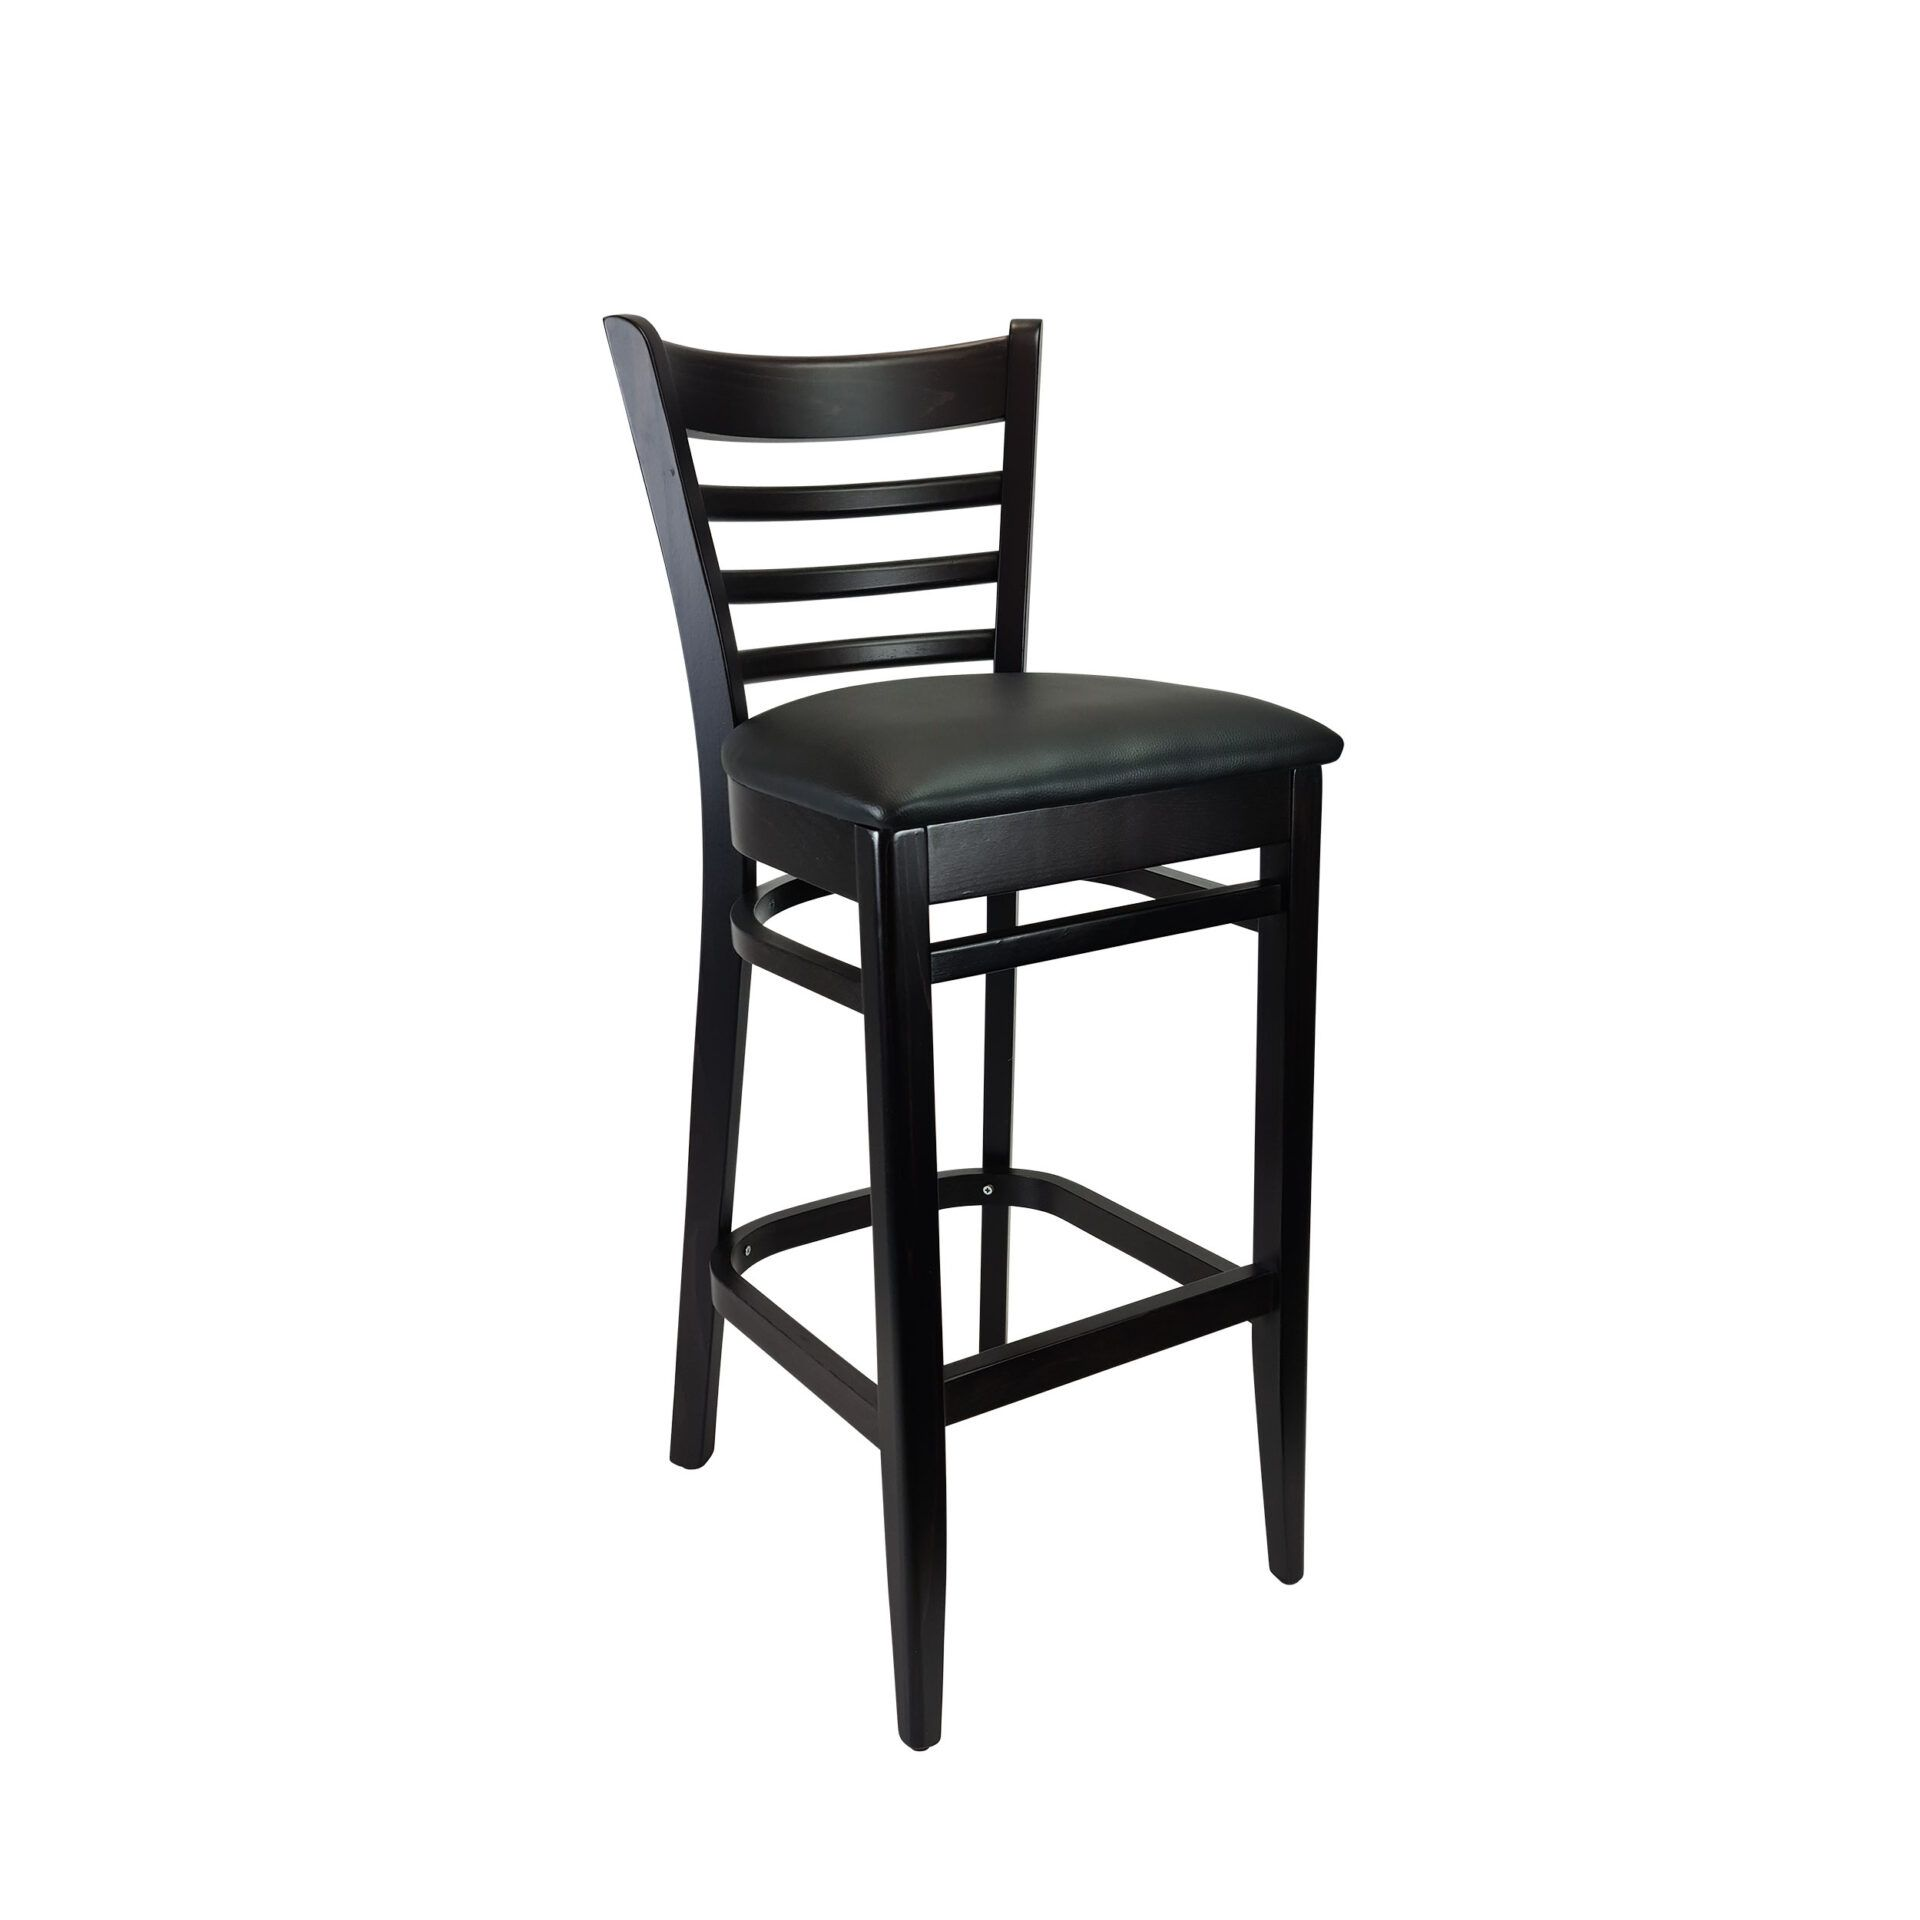 florence barstool wenge.black cushion front side